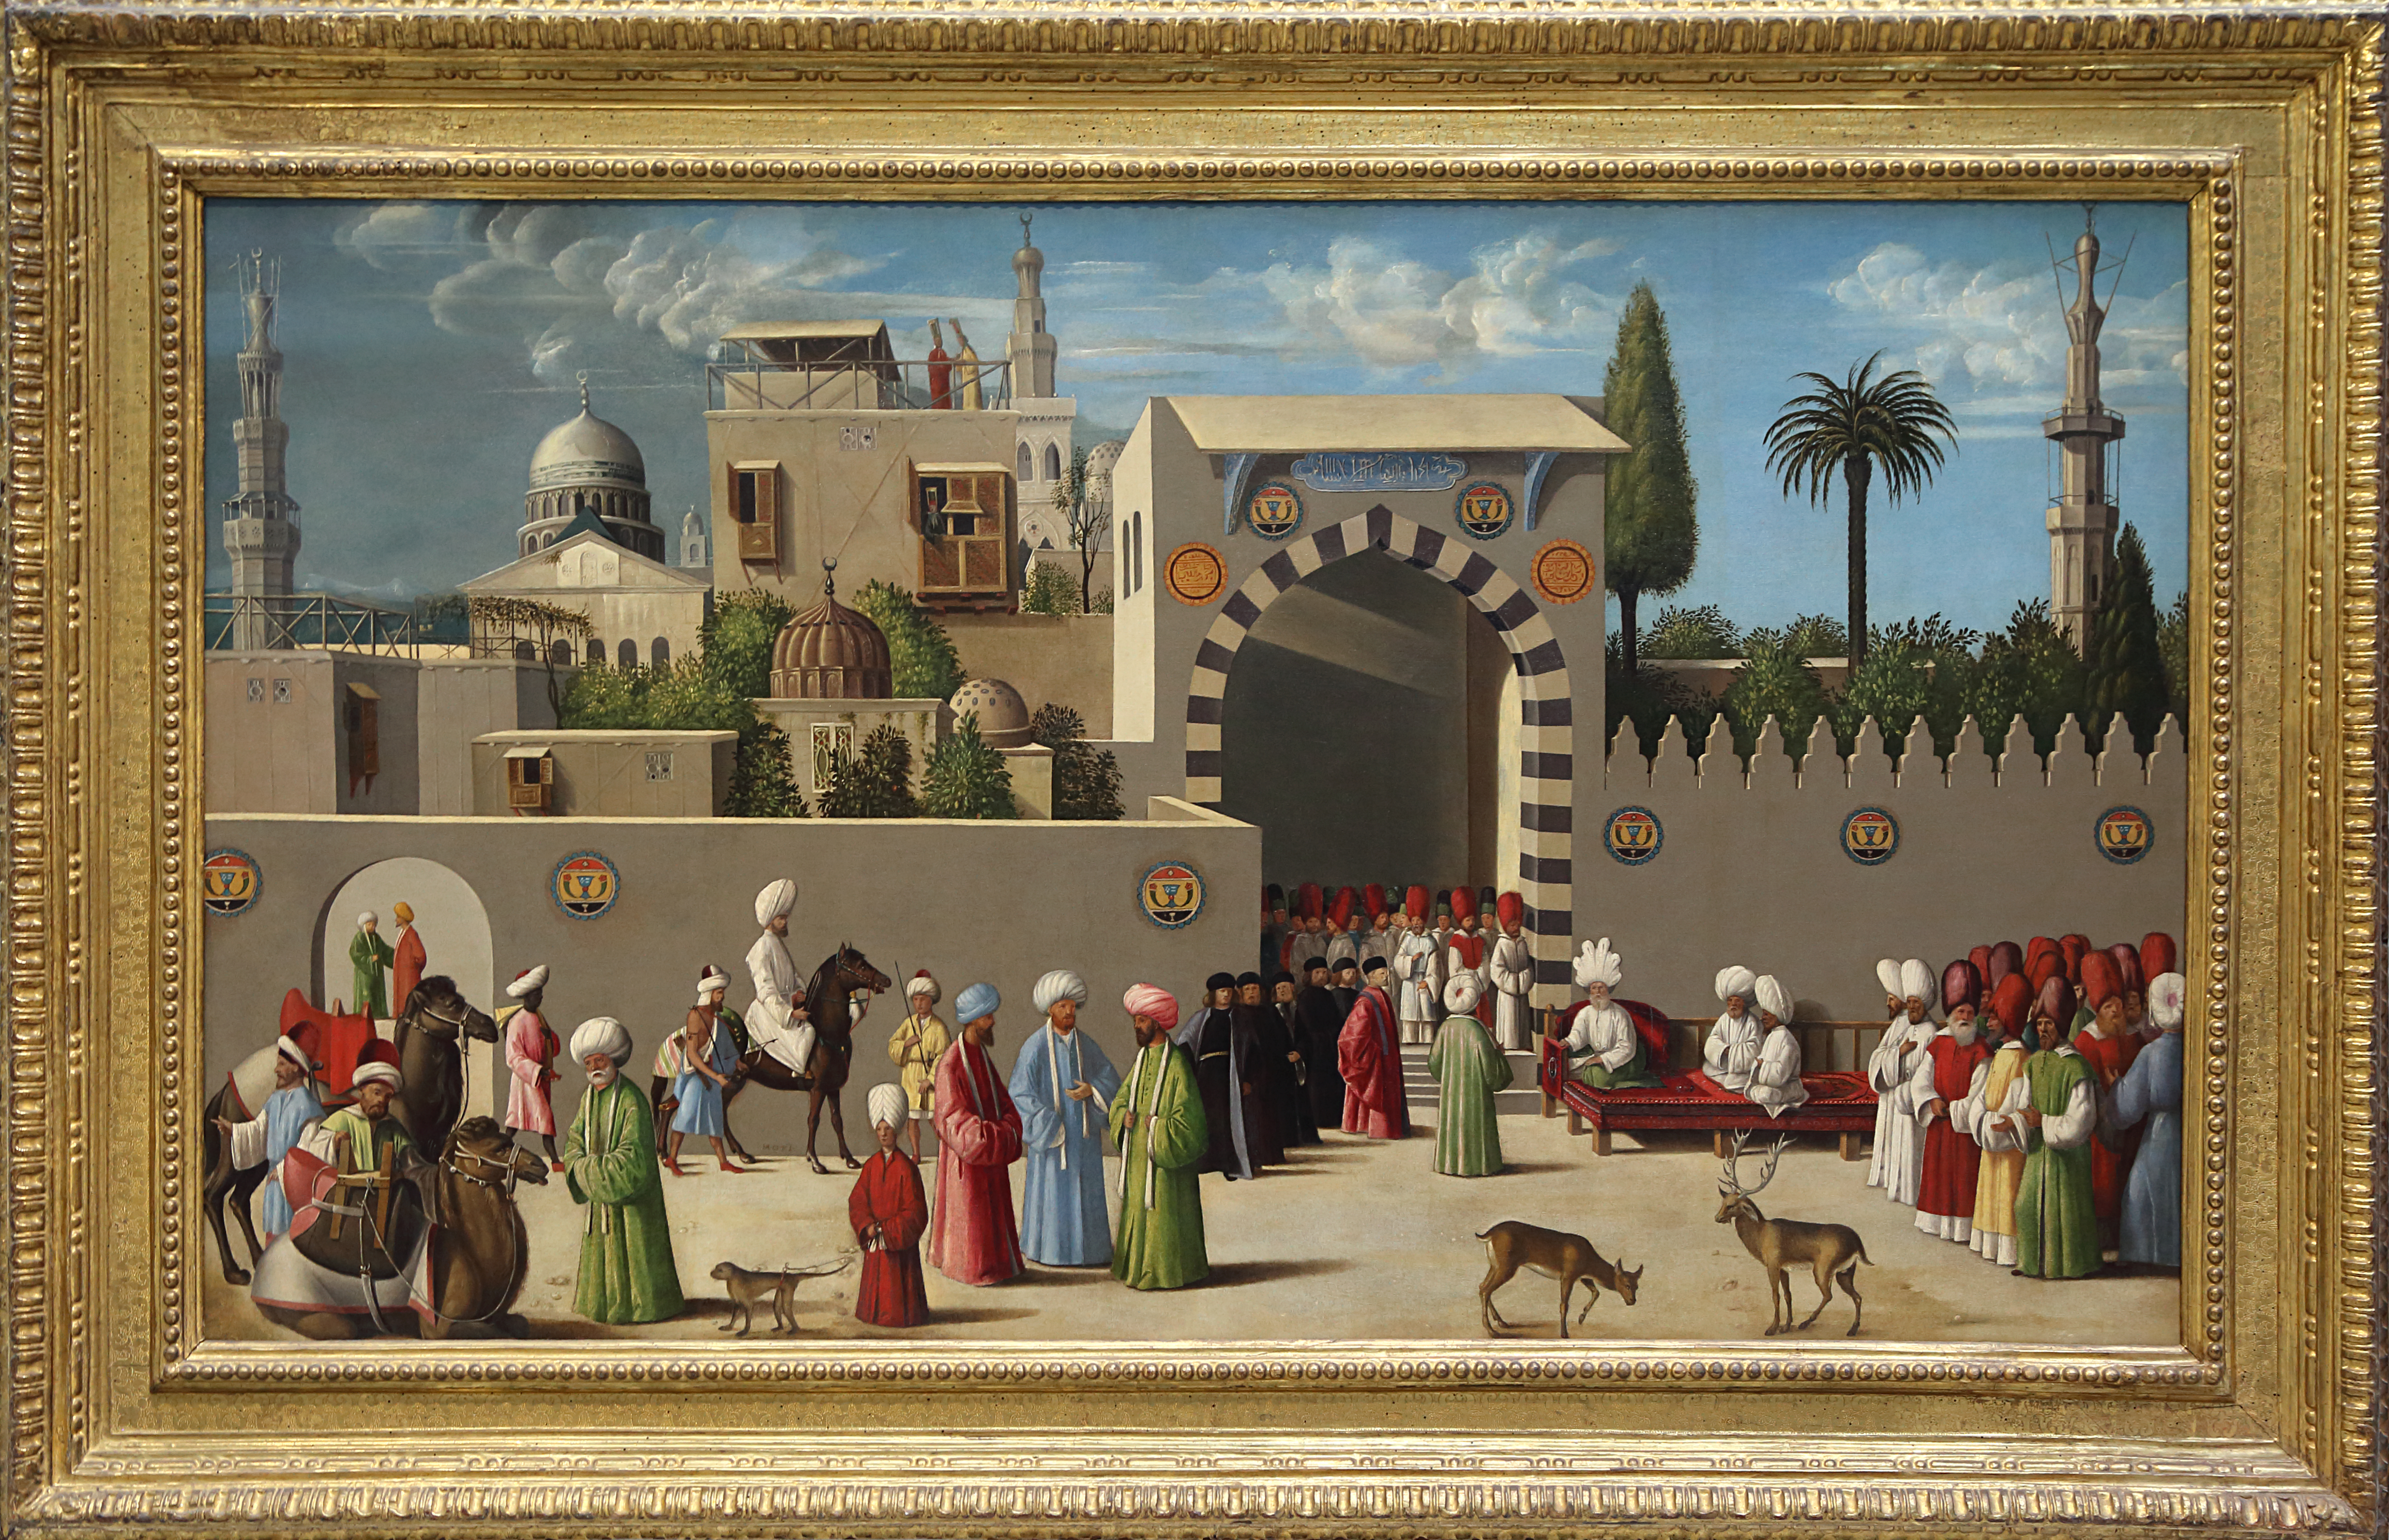 People in brightly dressed robes and turbans gather outside a low-walled city or fortress.